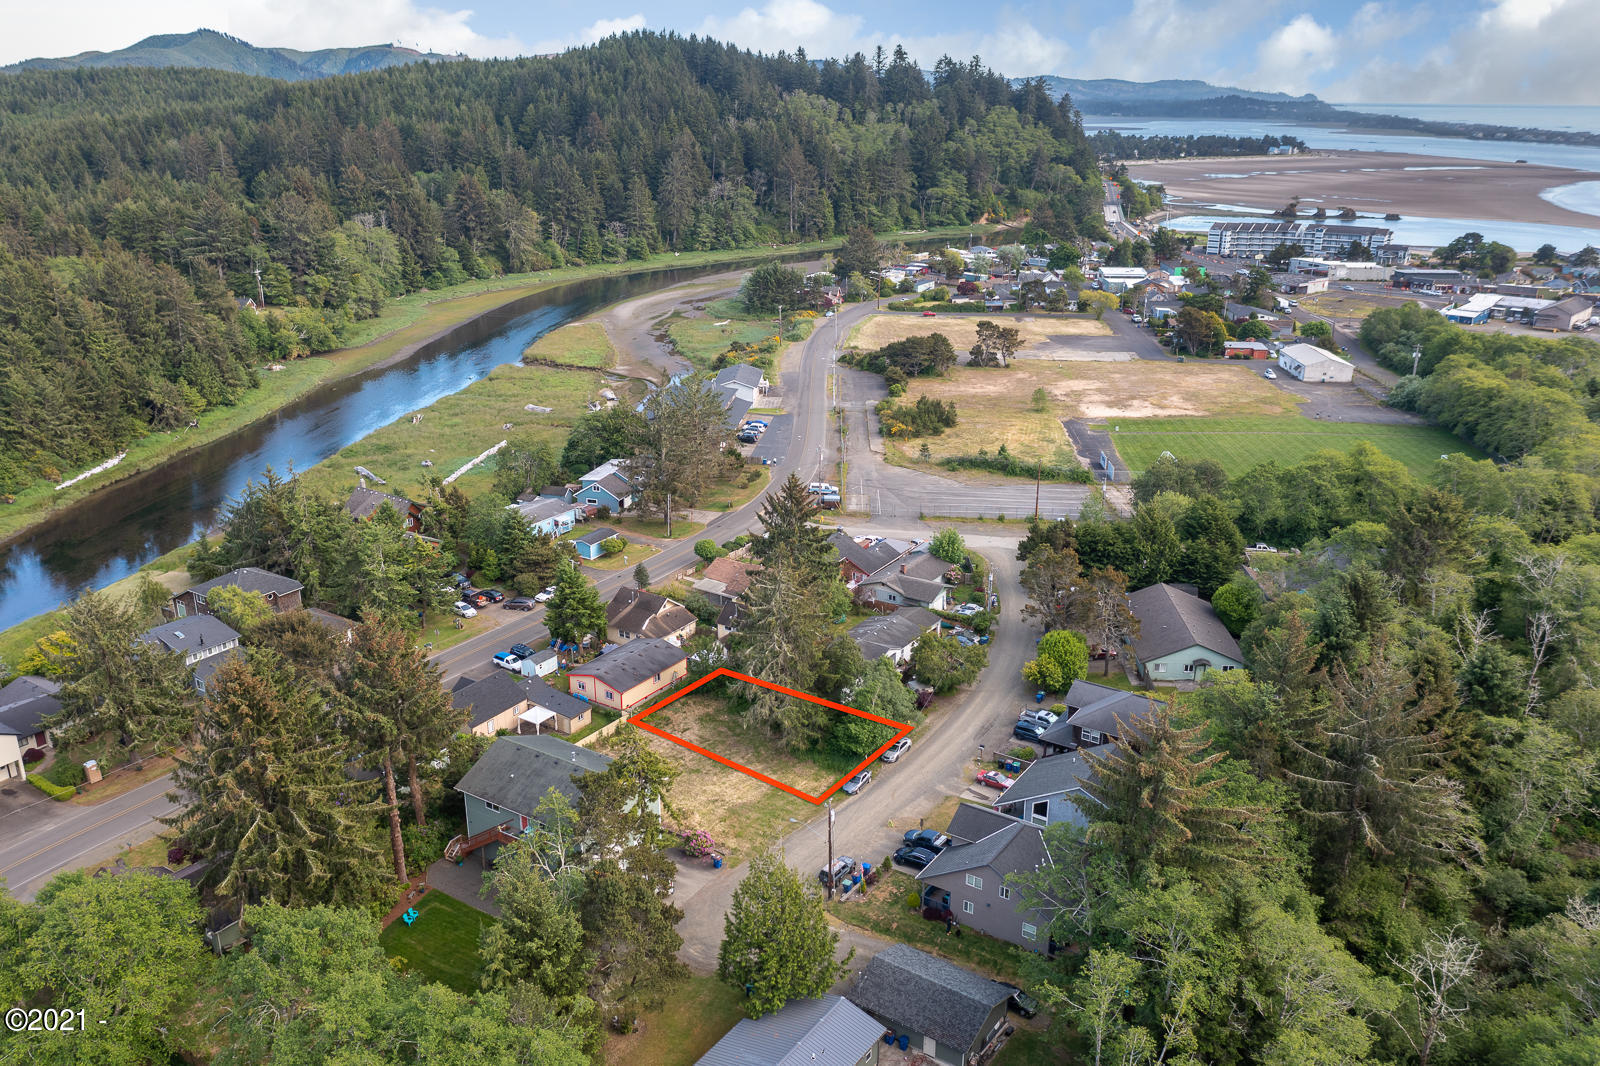 LOT 2900 SE Lee Ave, Lincoln City, OR 97367 - Lot 2900 SE Lee Ave Lincoln City